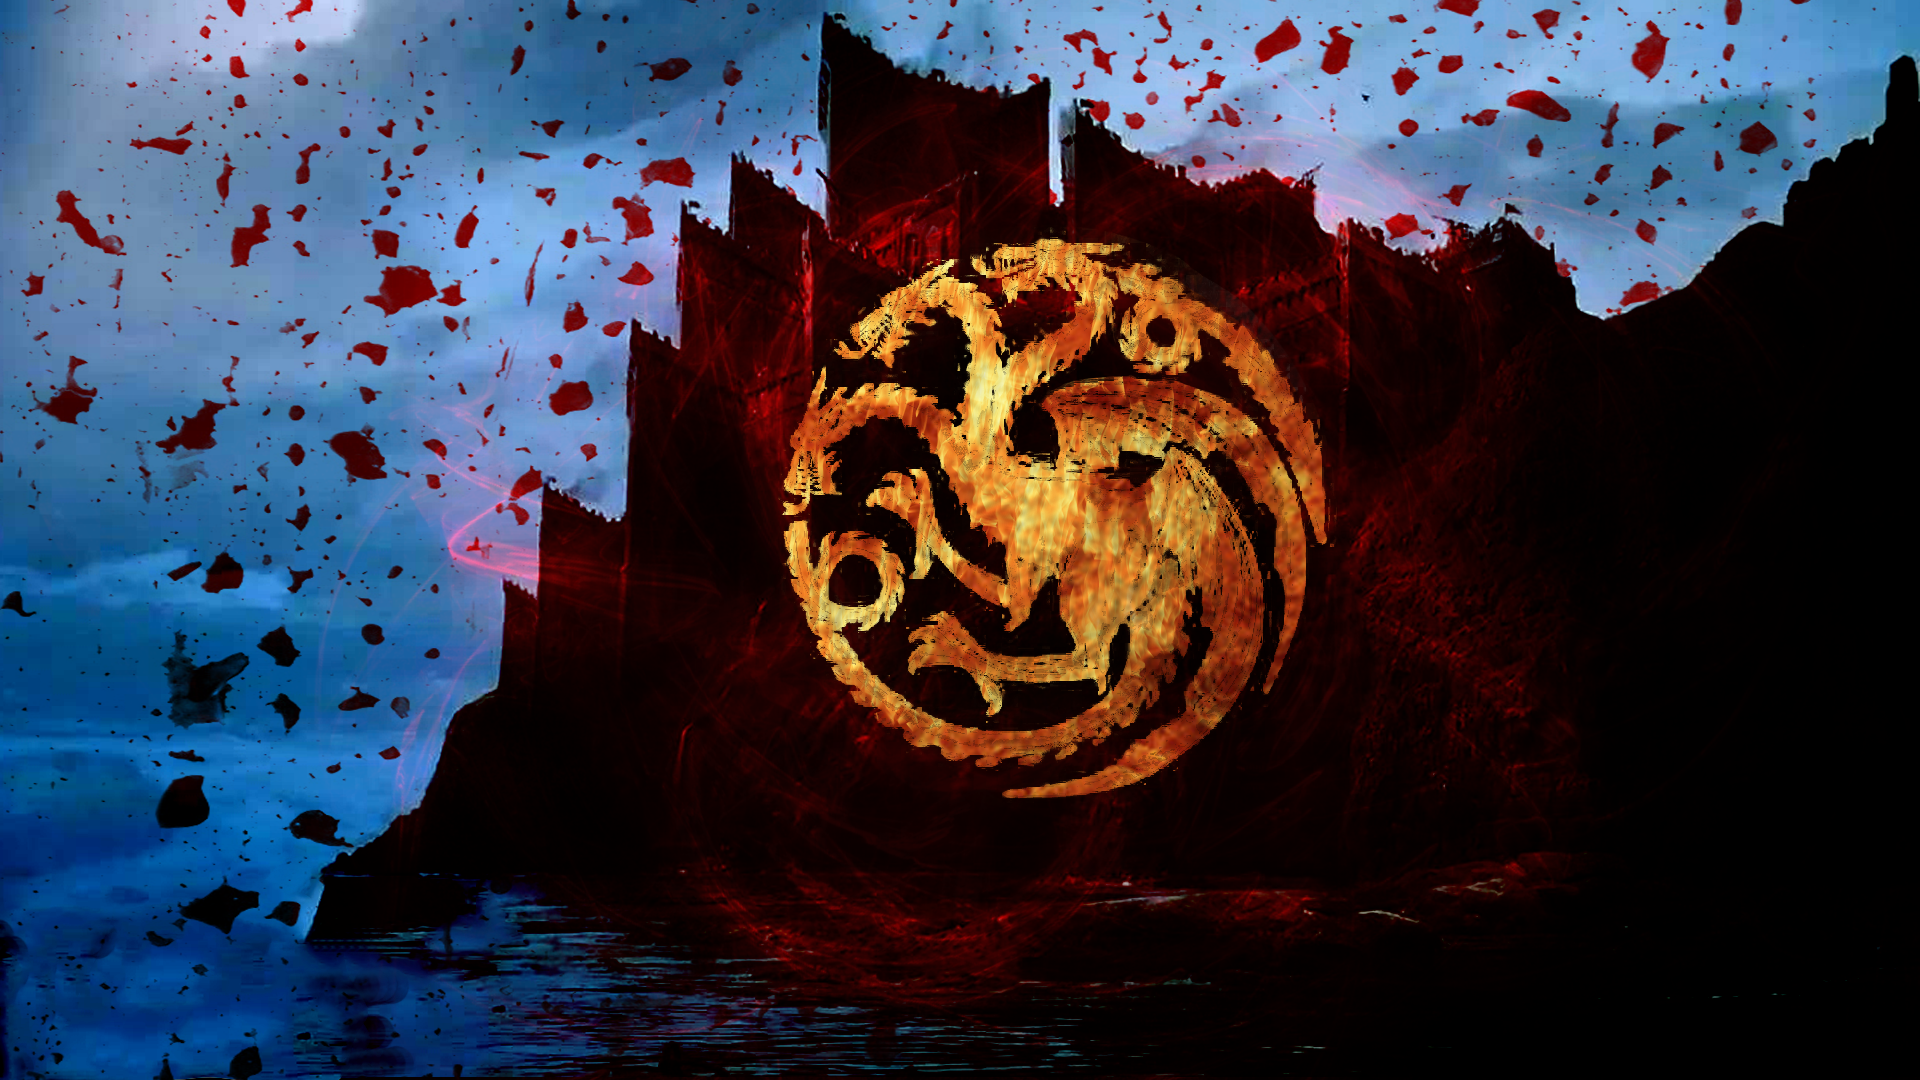 Free Download Game Of Thrones House Targaryen Wallpaper By